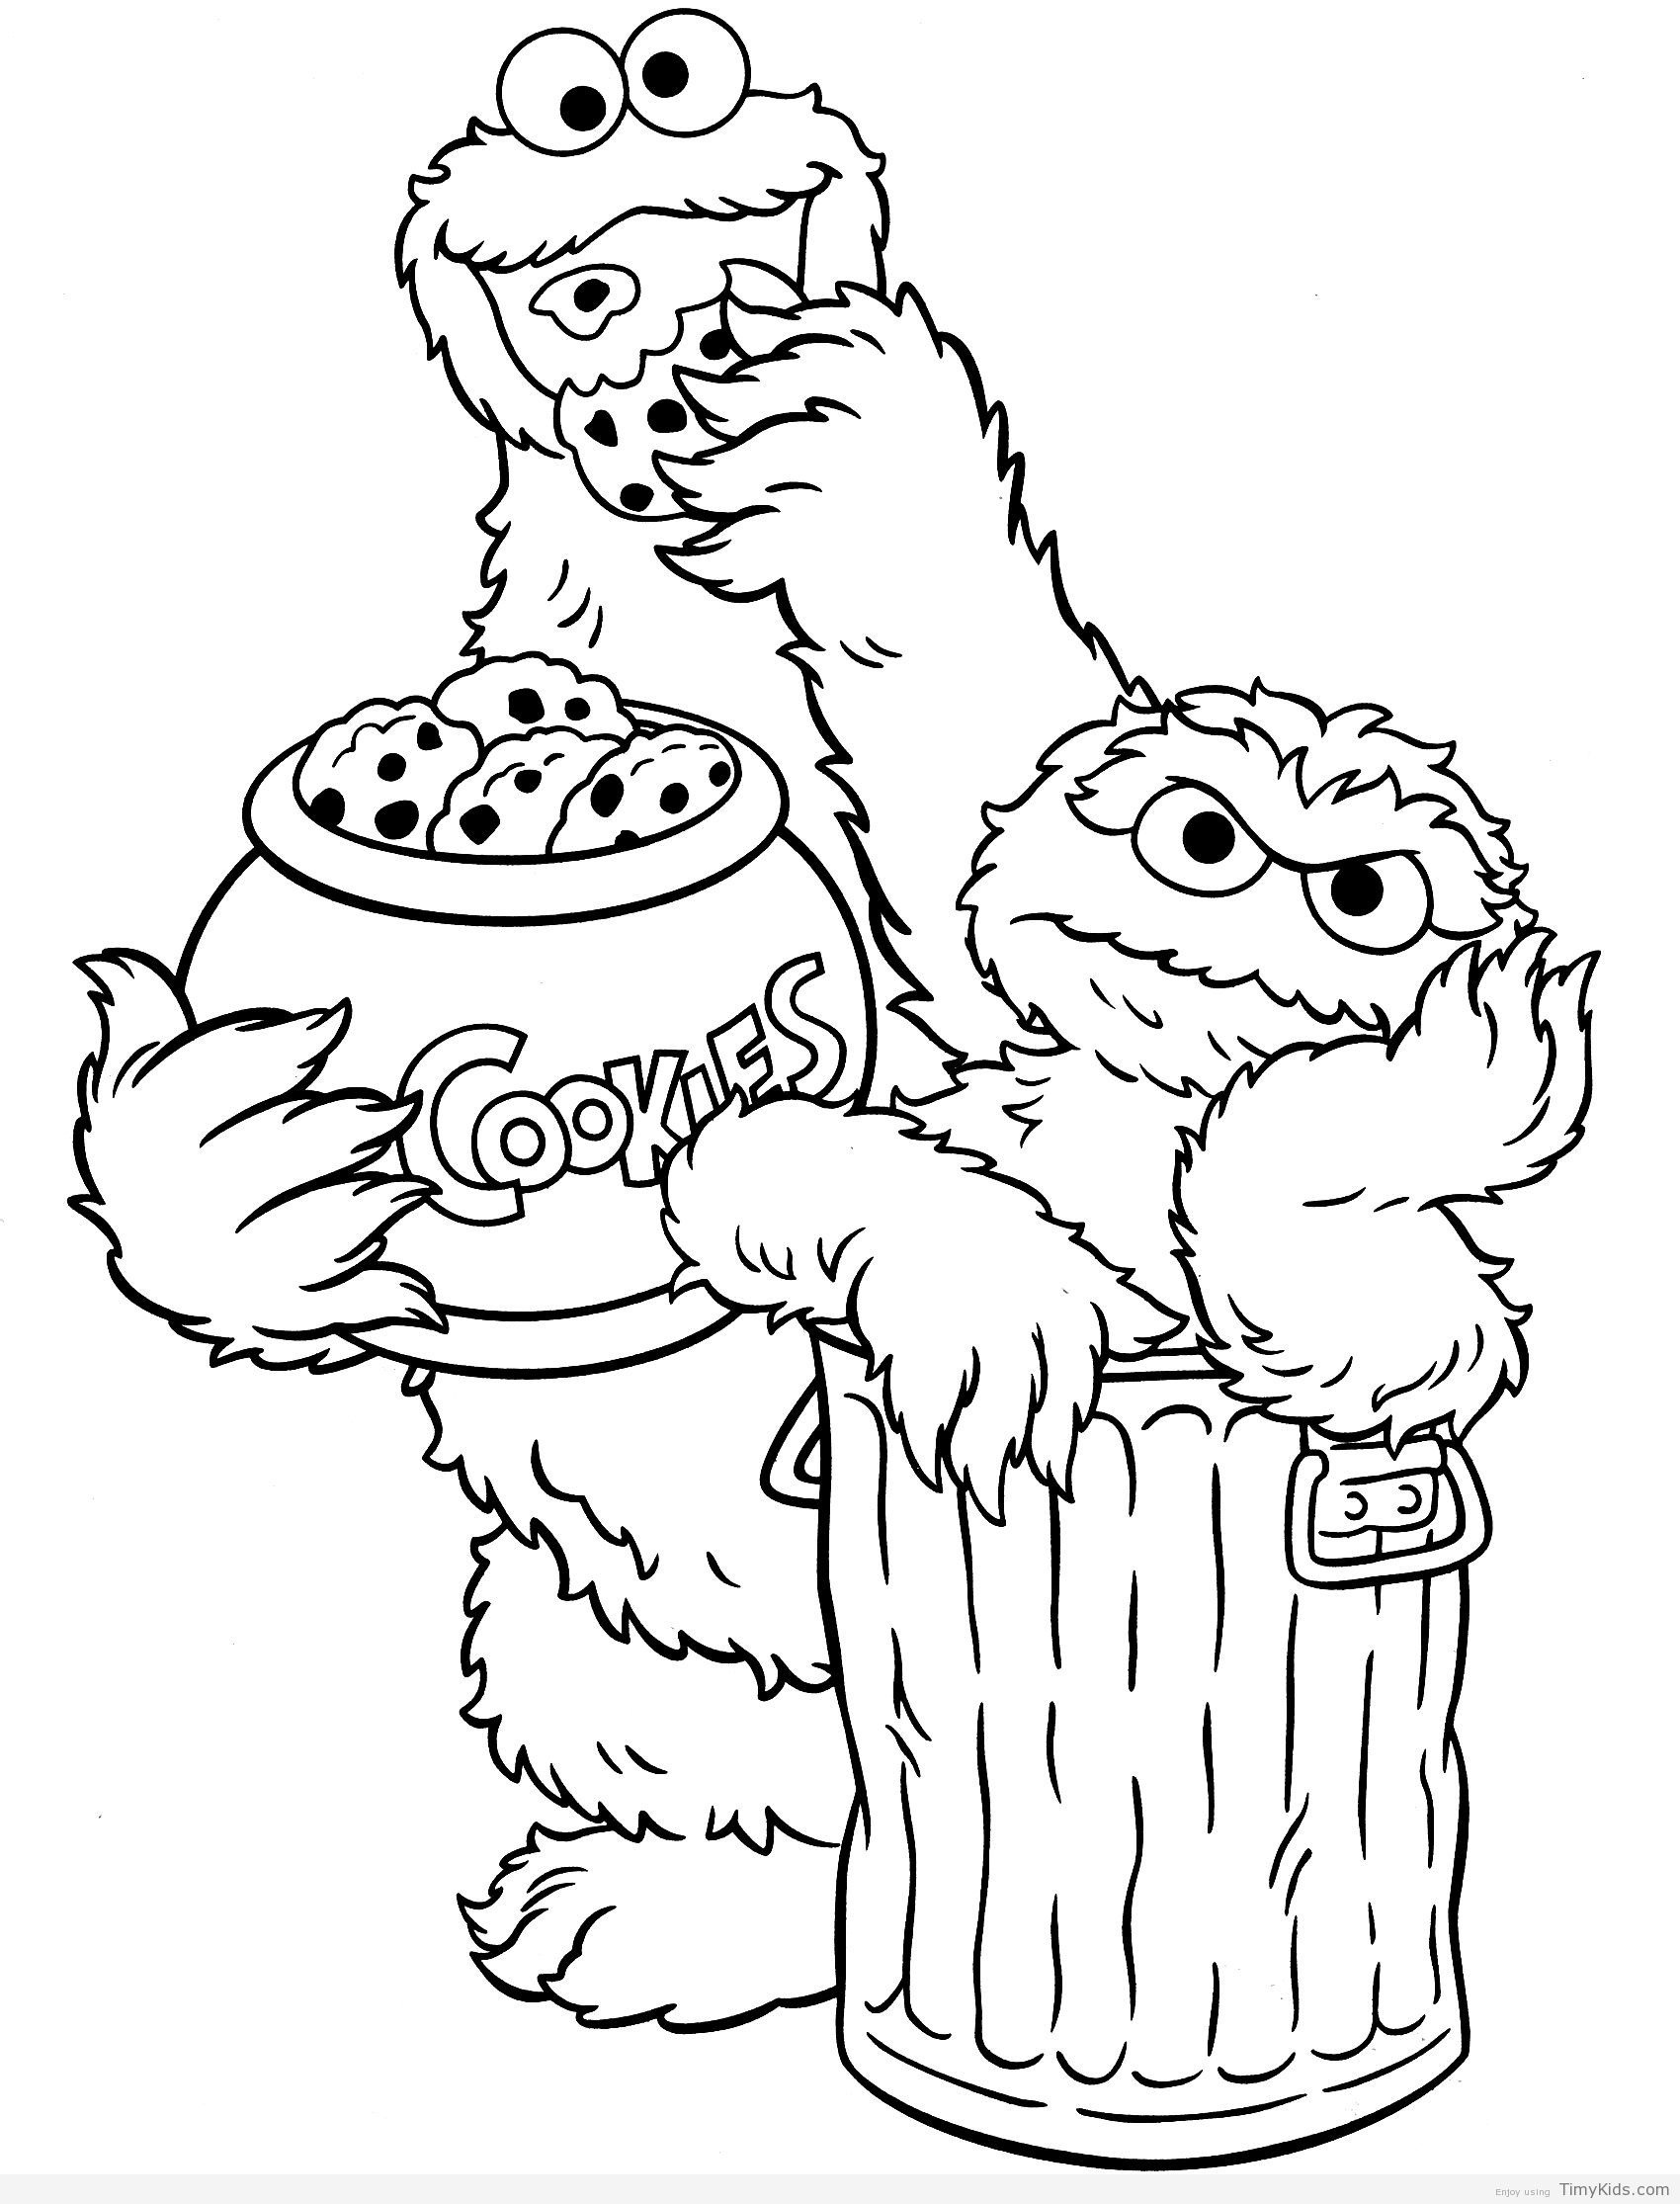 Sesame Street Coloring Page Sesame Street Coloring Pages